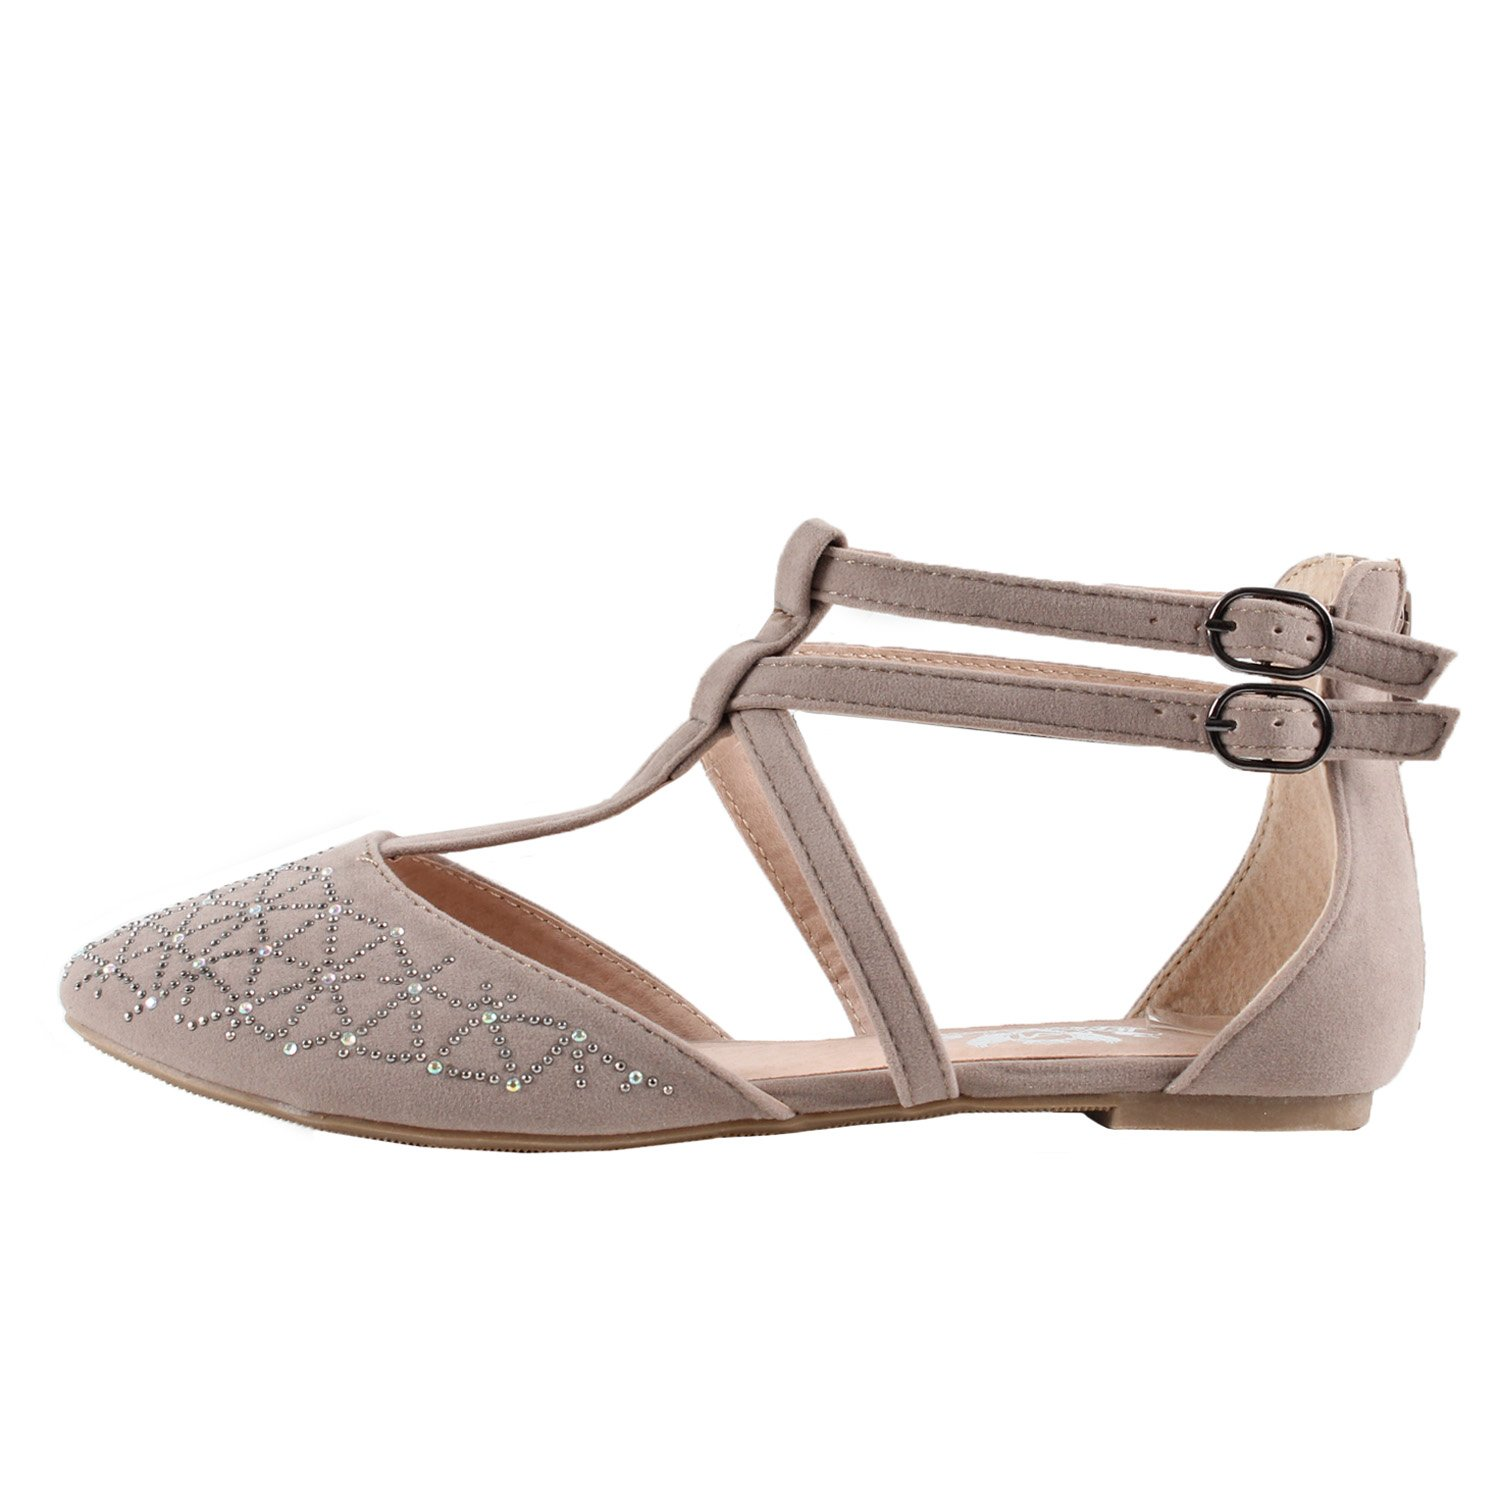 Taupe Suede West Blvd Katowice Flat Ballet-Flats 7.5